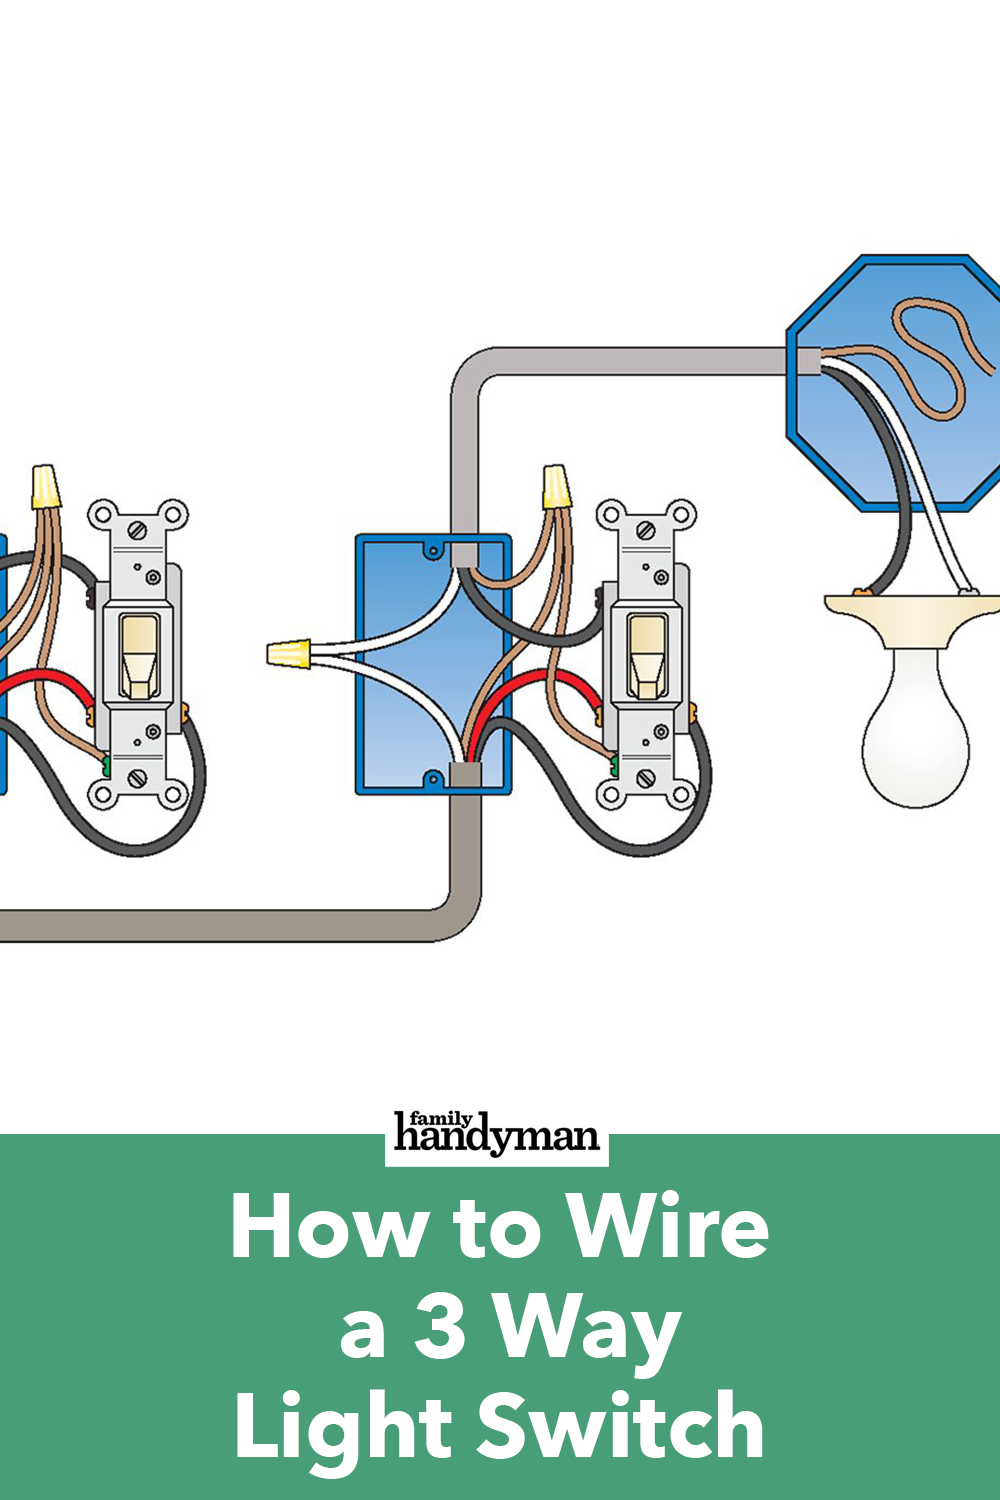 How To Wire A 3 Way Light Switch Light Switch Diy Electrical Light Switch Wiring